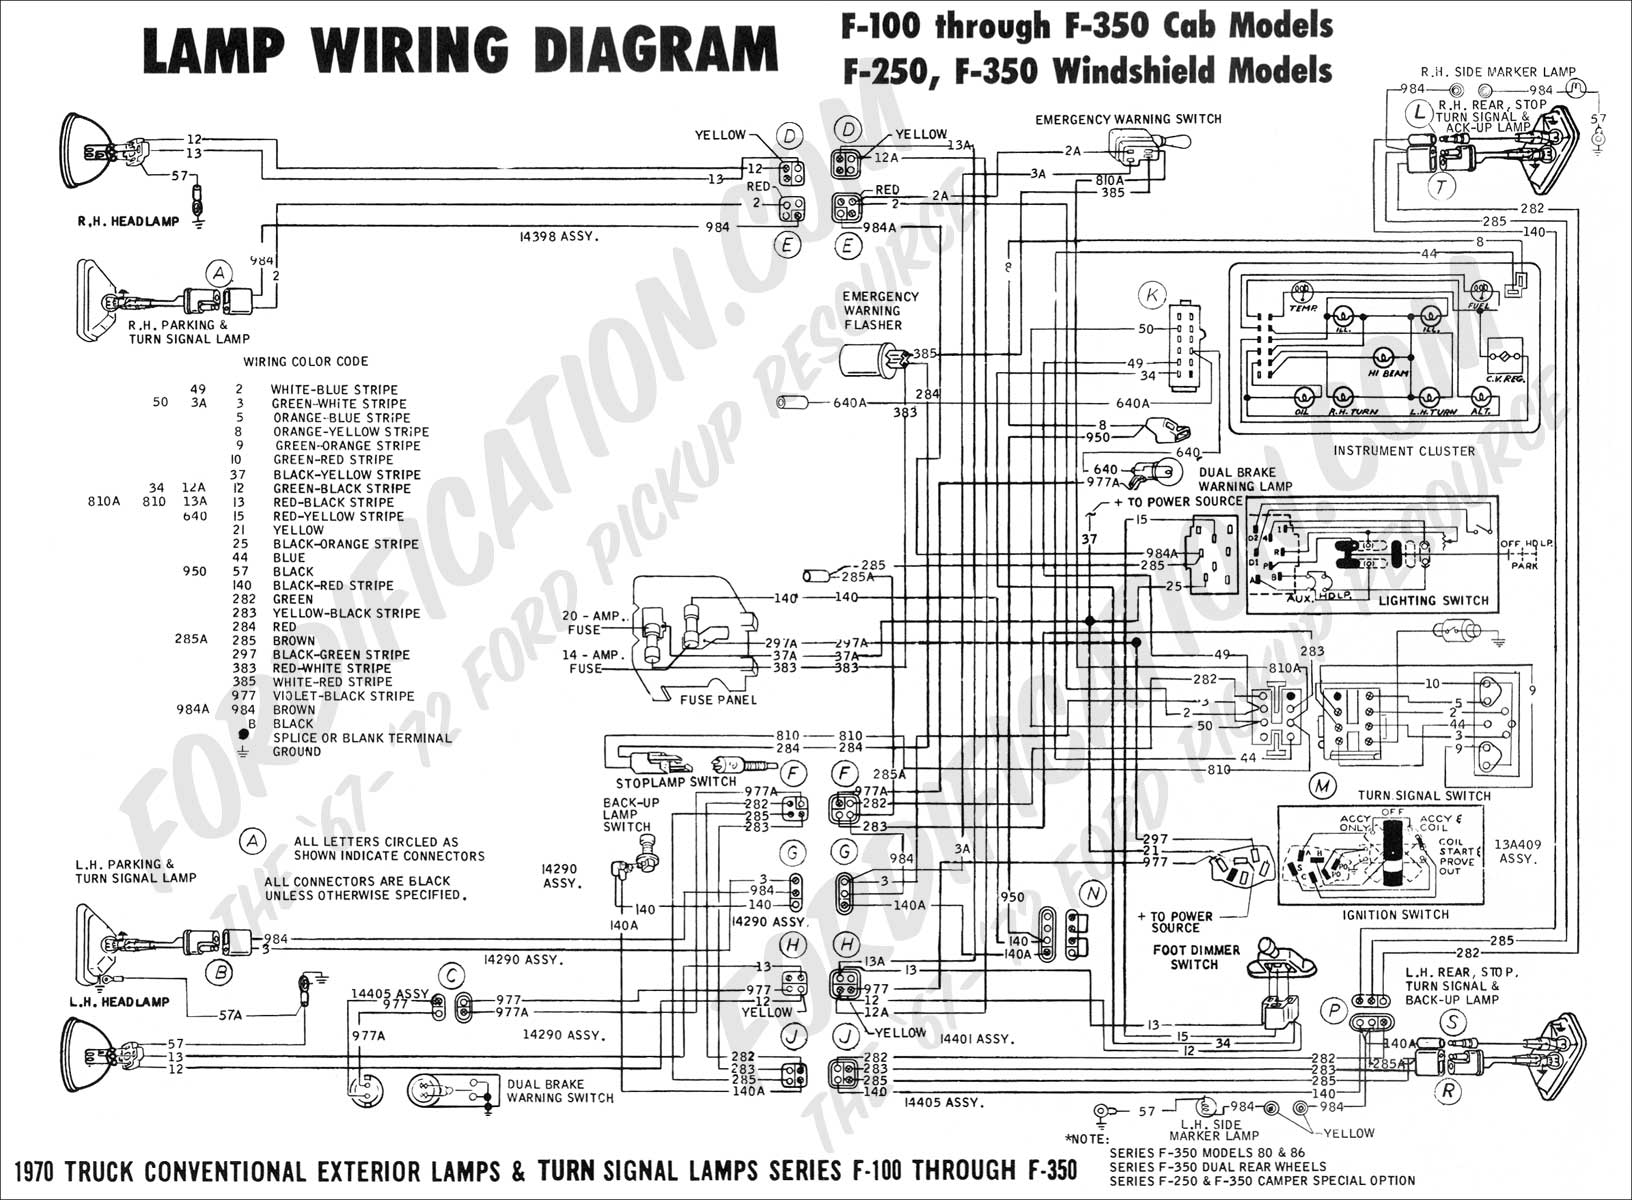 wiring diagram for 1999 ford mustang best wiring library rh 105 princestaash org